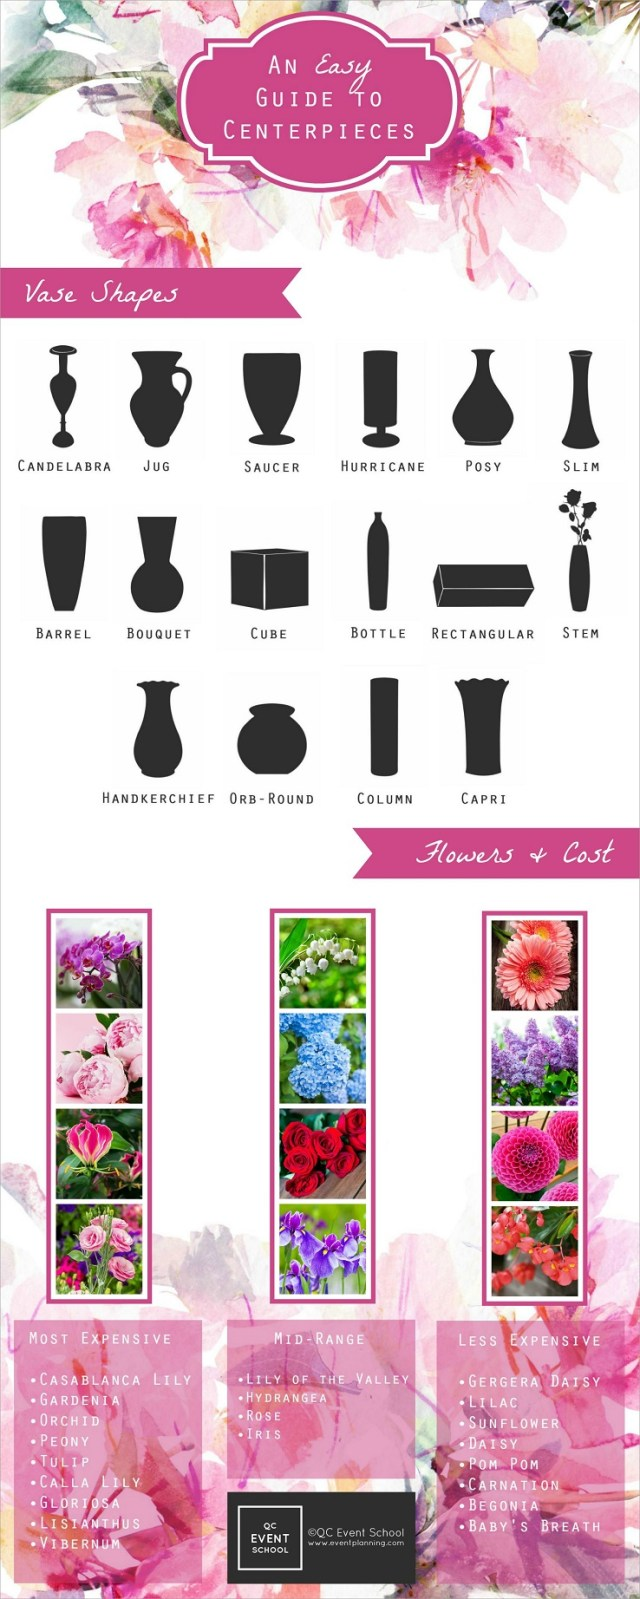 Easy Guide to Centerpieces